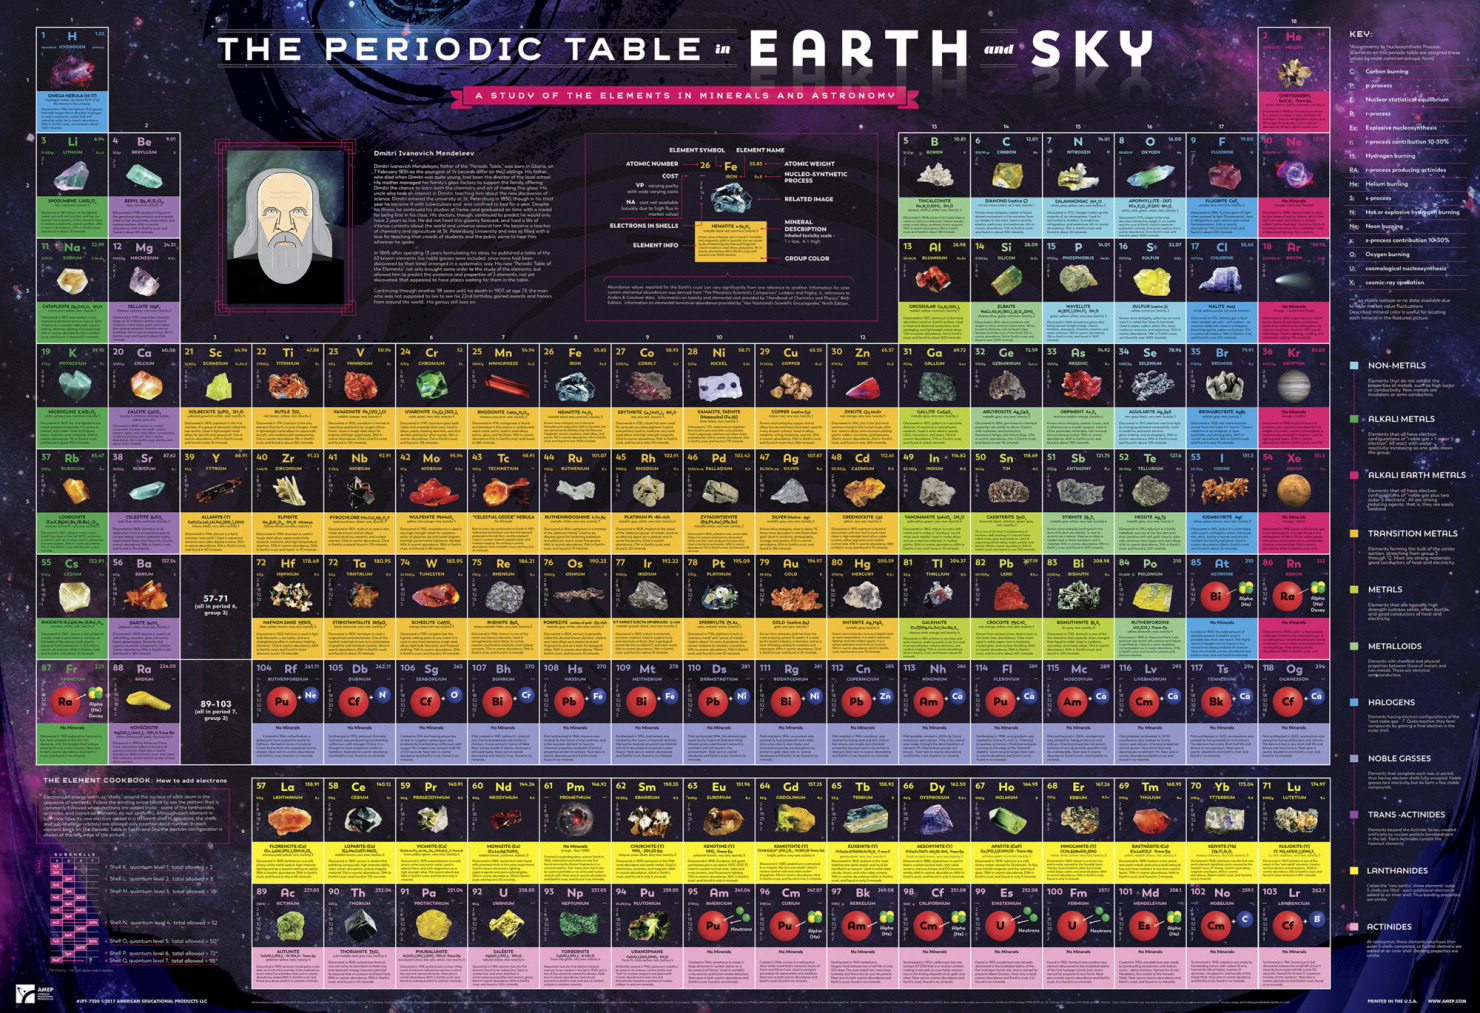 Poster frey scientific cpo science hubbard scientific periodic table in earth and sky poster gamestrikefo Choice Image